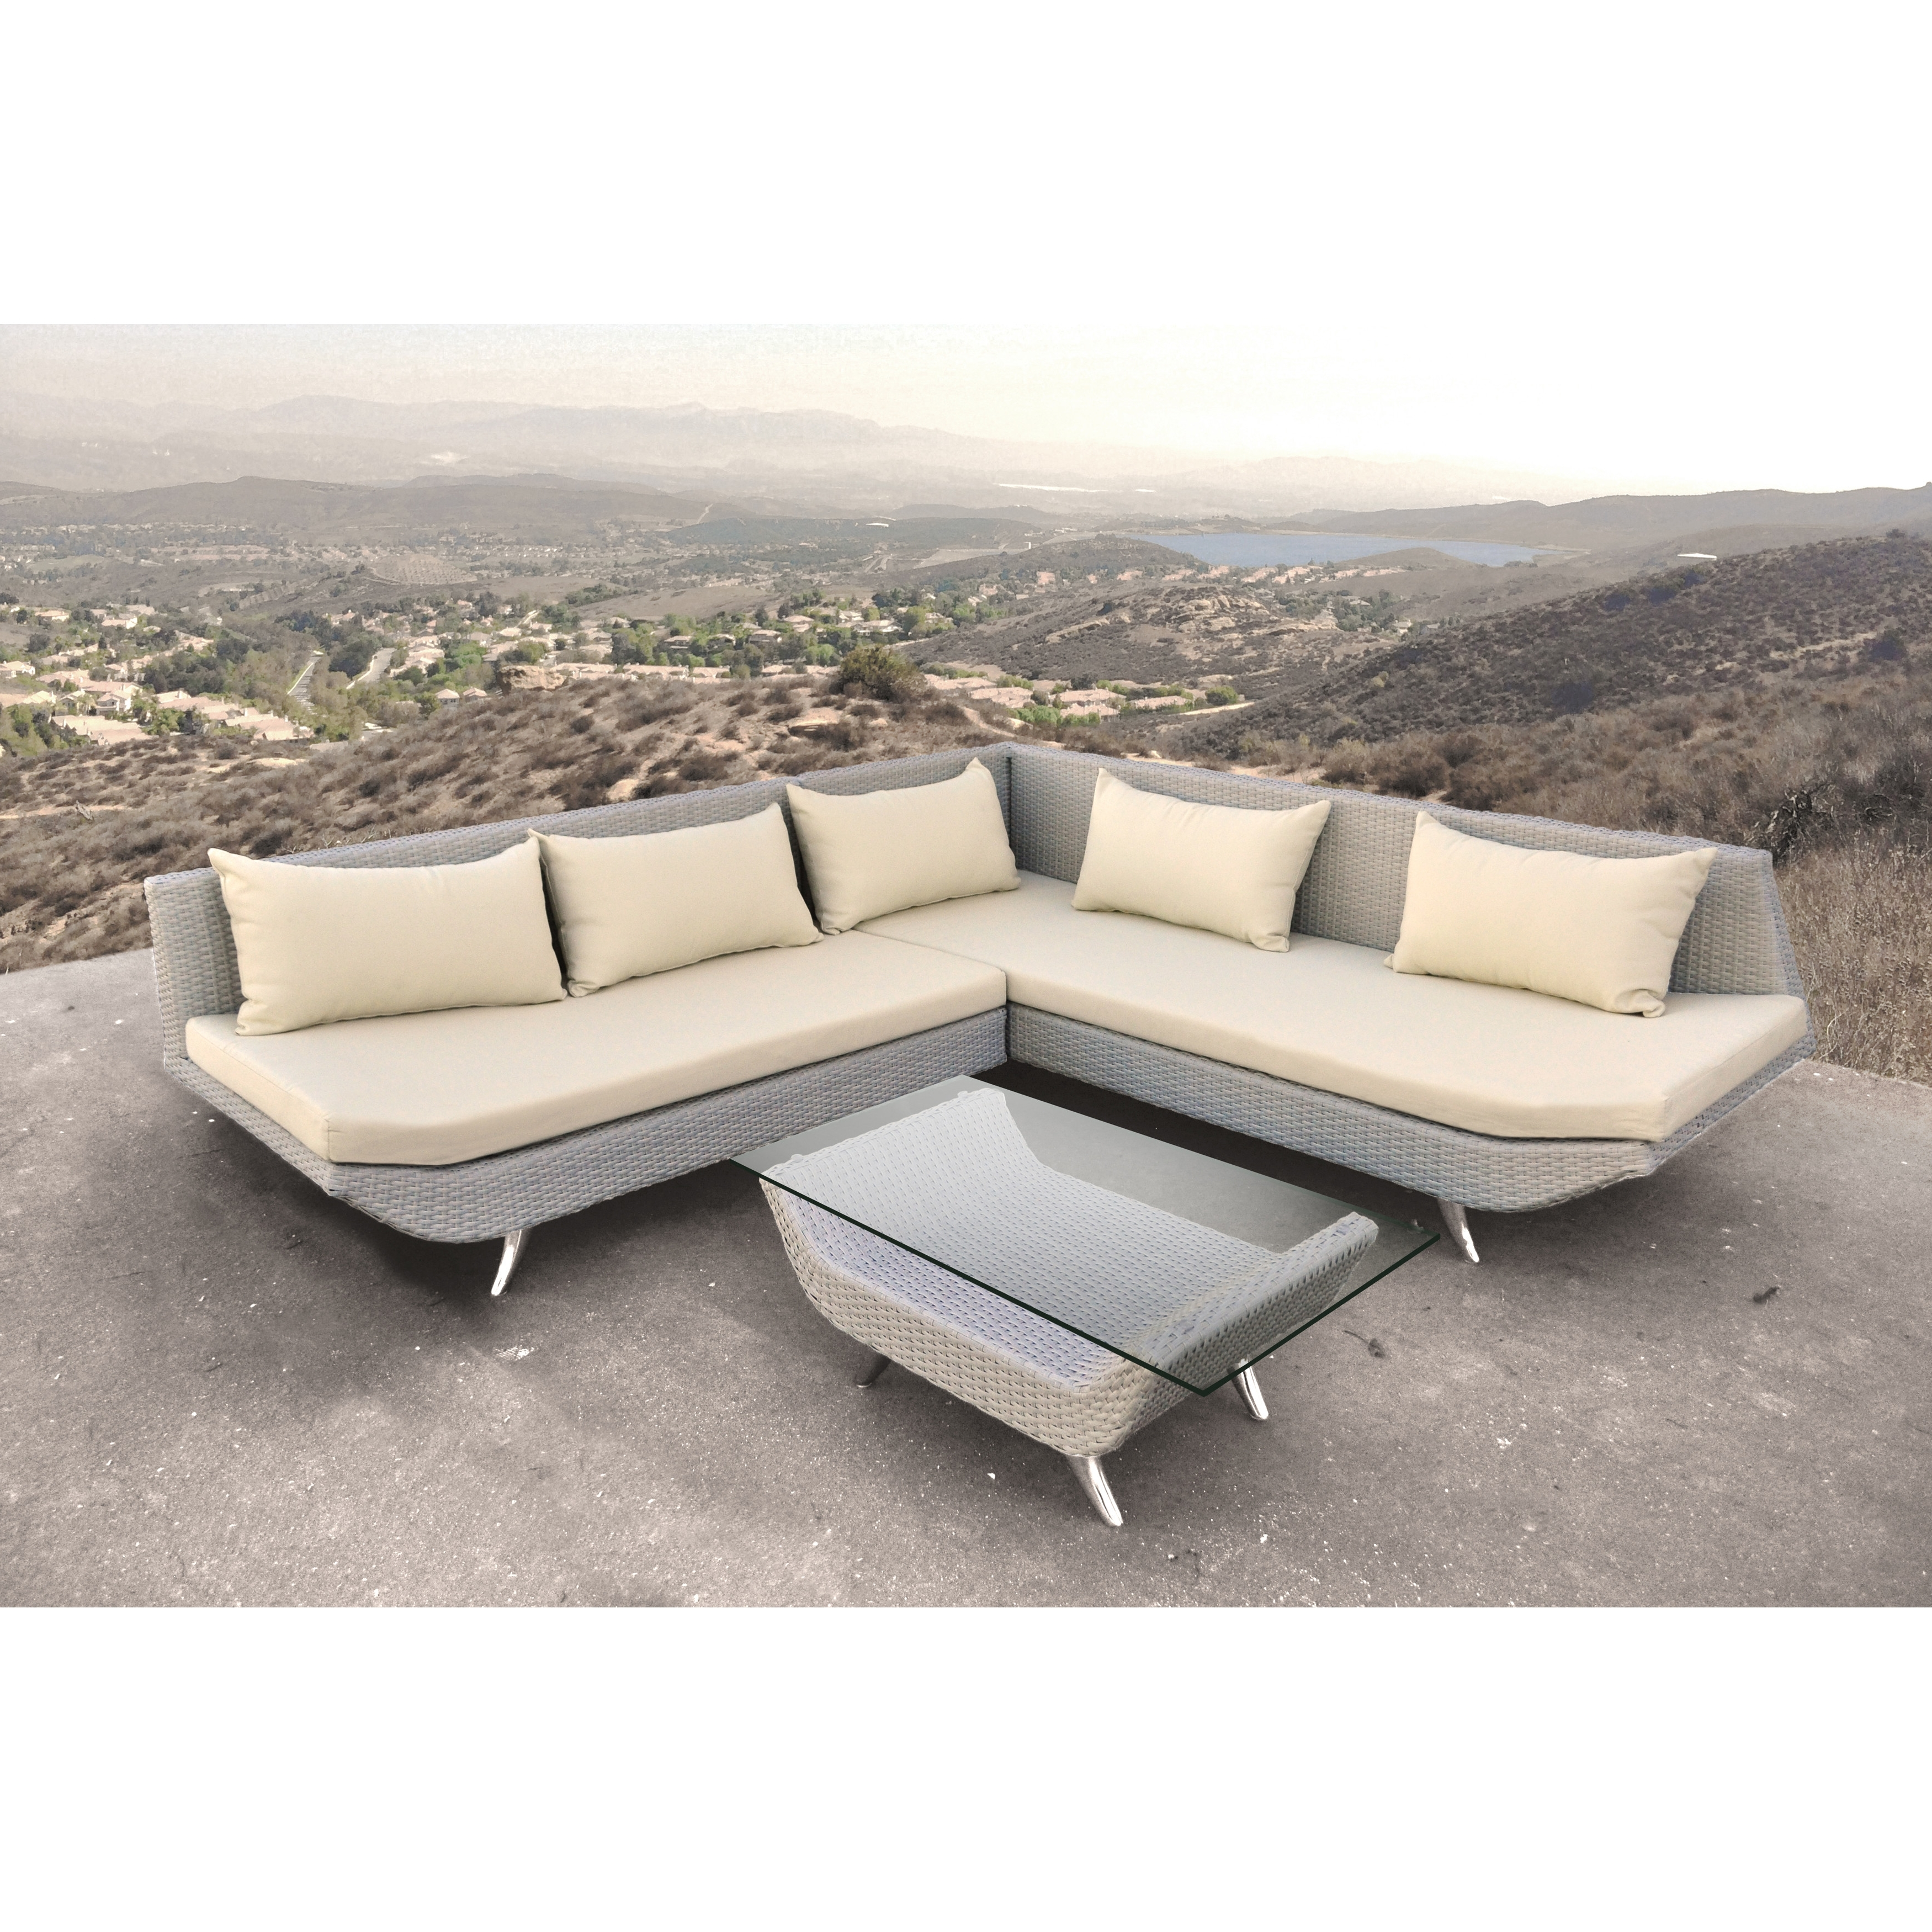 Ottawa Sectional Sofas Within 2018 Sectional Sofa : Discount Sectionals Deep Seat Leather Sectional (View 13 of 20)